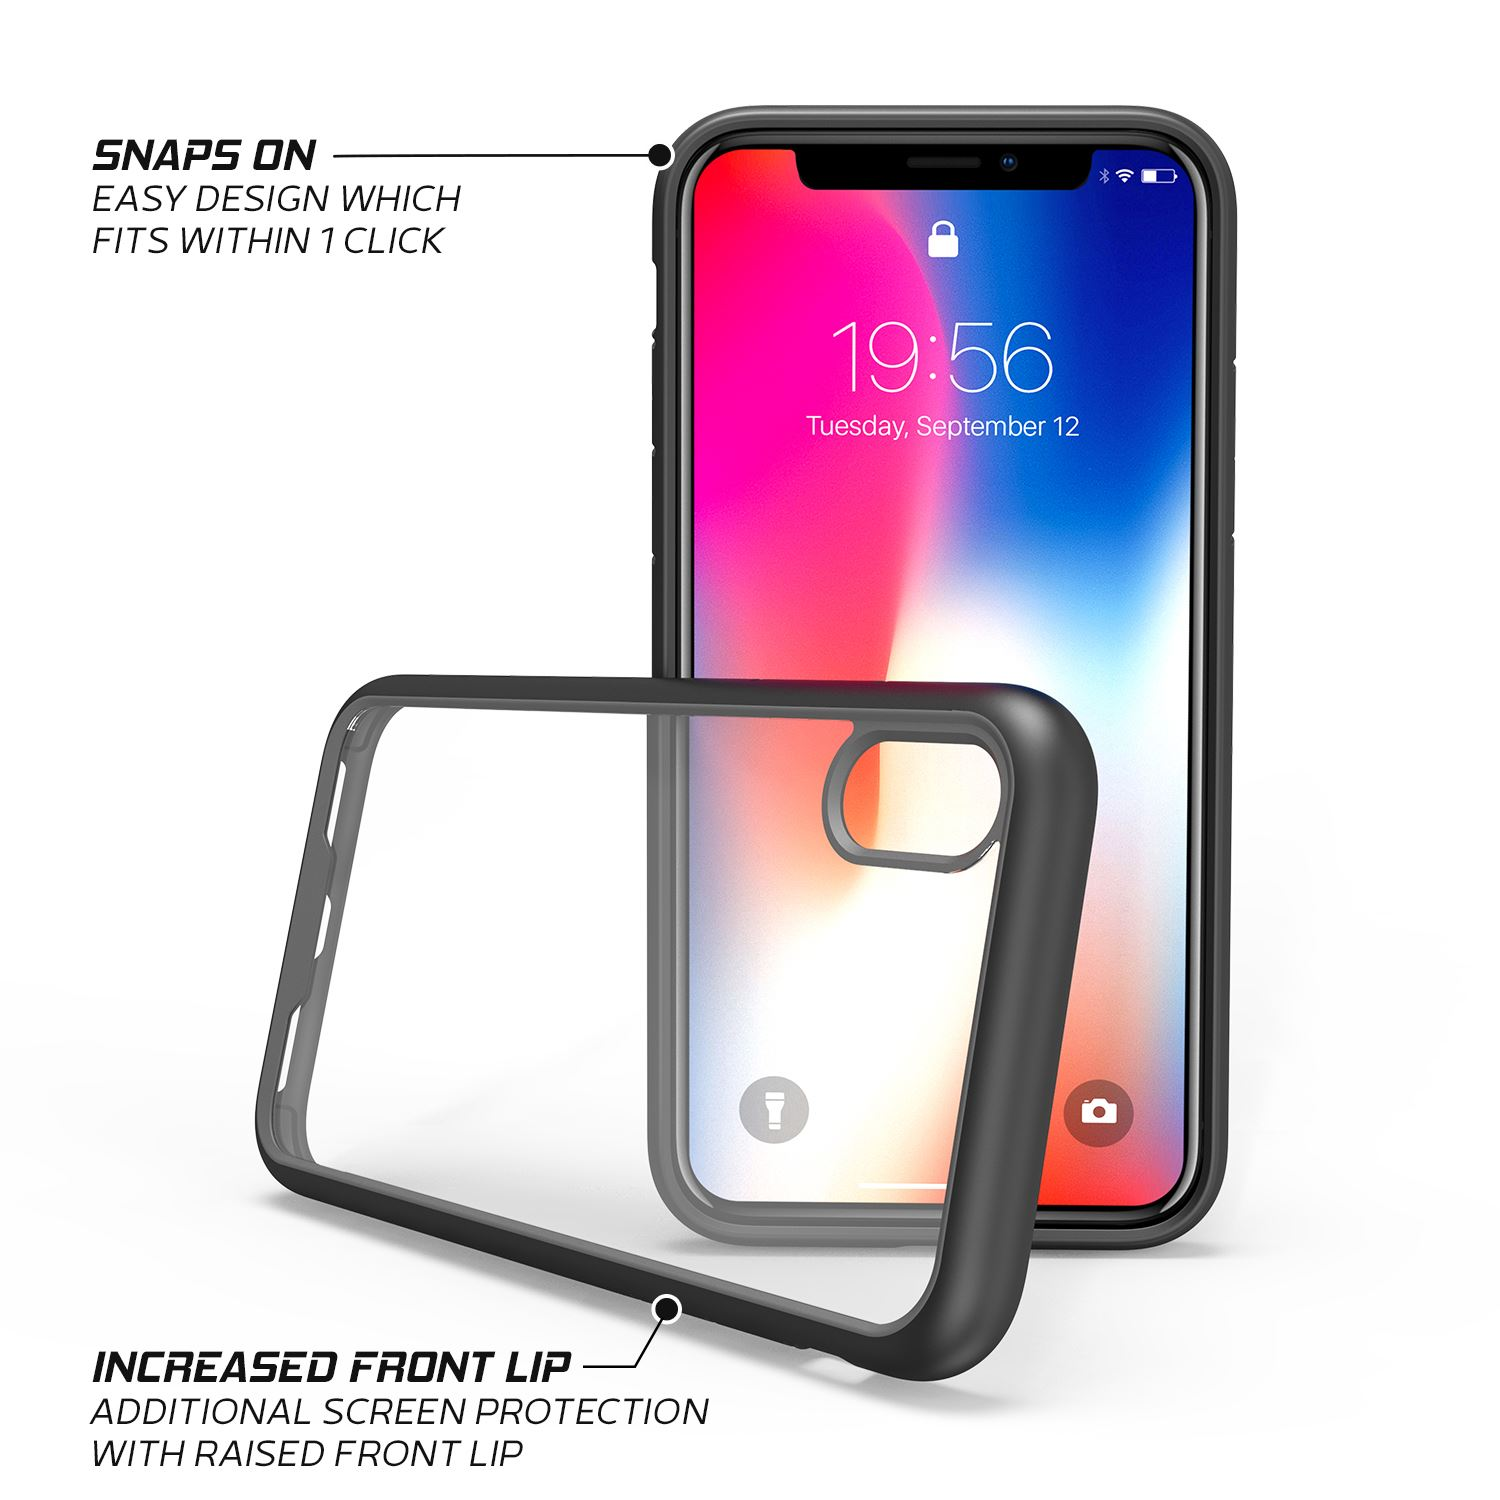 thumbnail 16 - For Apple iPhone XR Xs Max X 8 7 Plus 6 Se 2020 Case Cover Clear Shockproof Thin